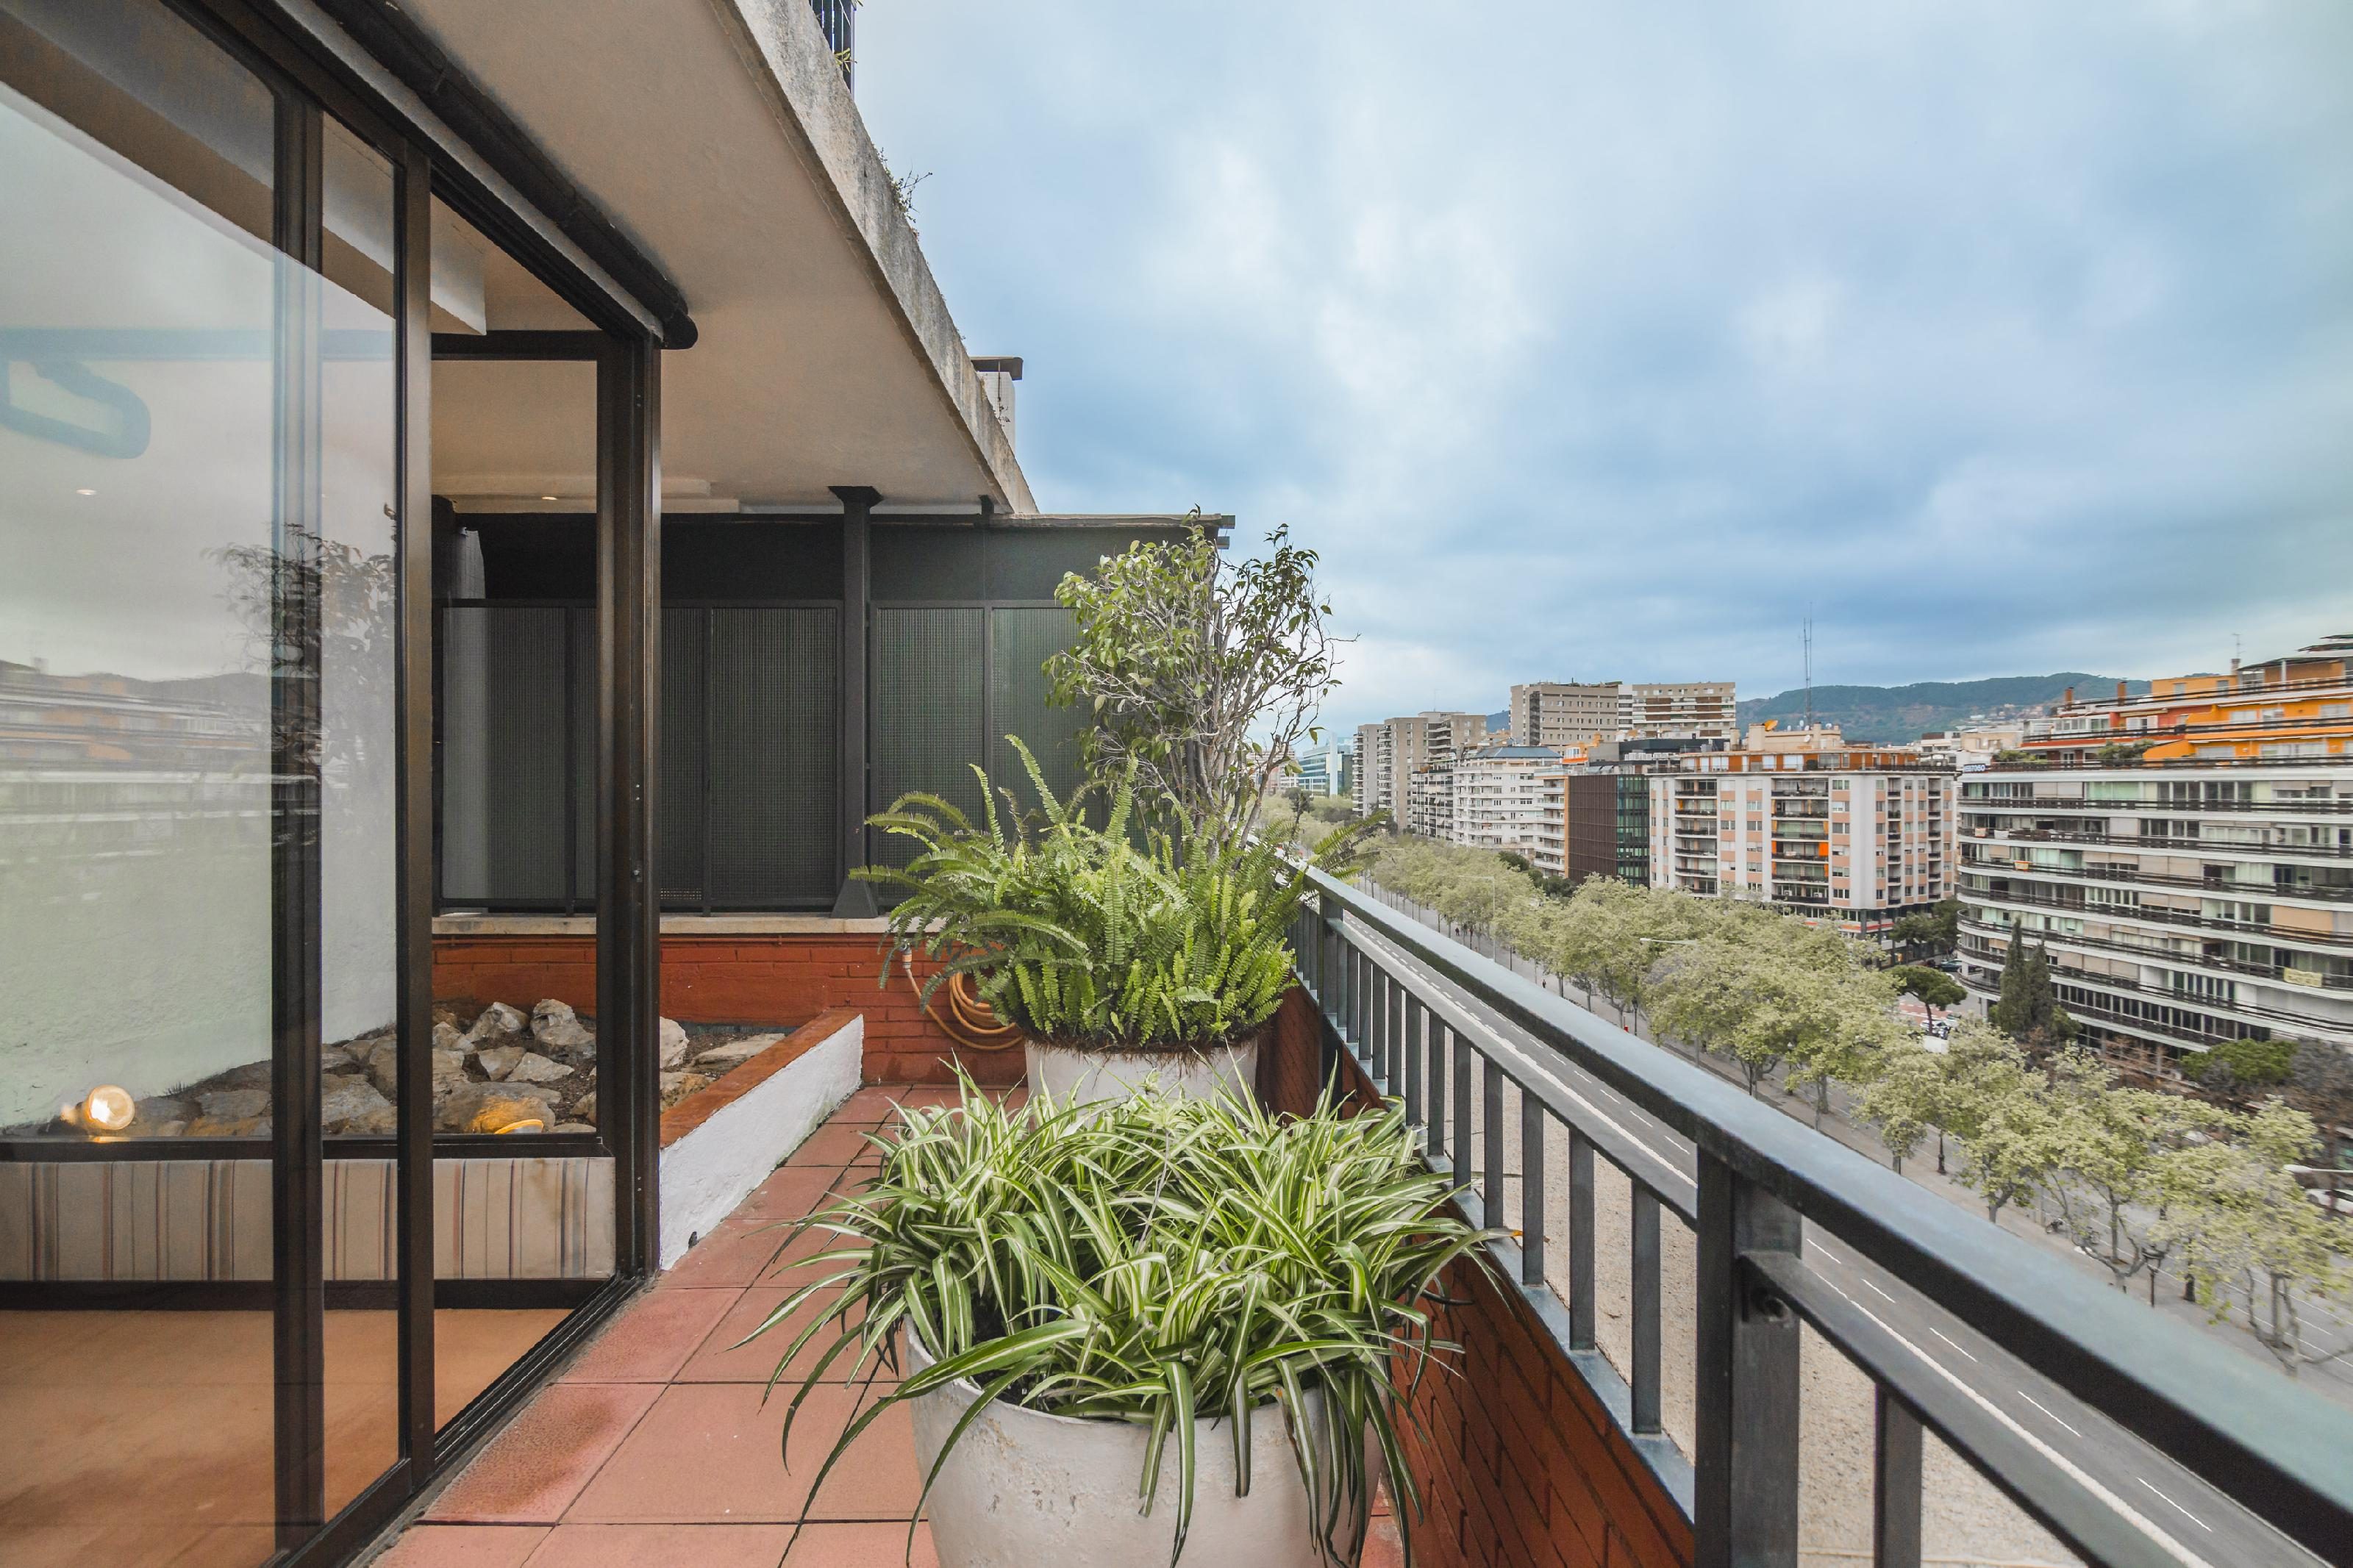 223855 Penthouse for sale in Sarrià-Sant Gervasi, Sant Gervasi-Galvany 1